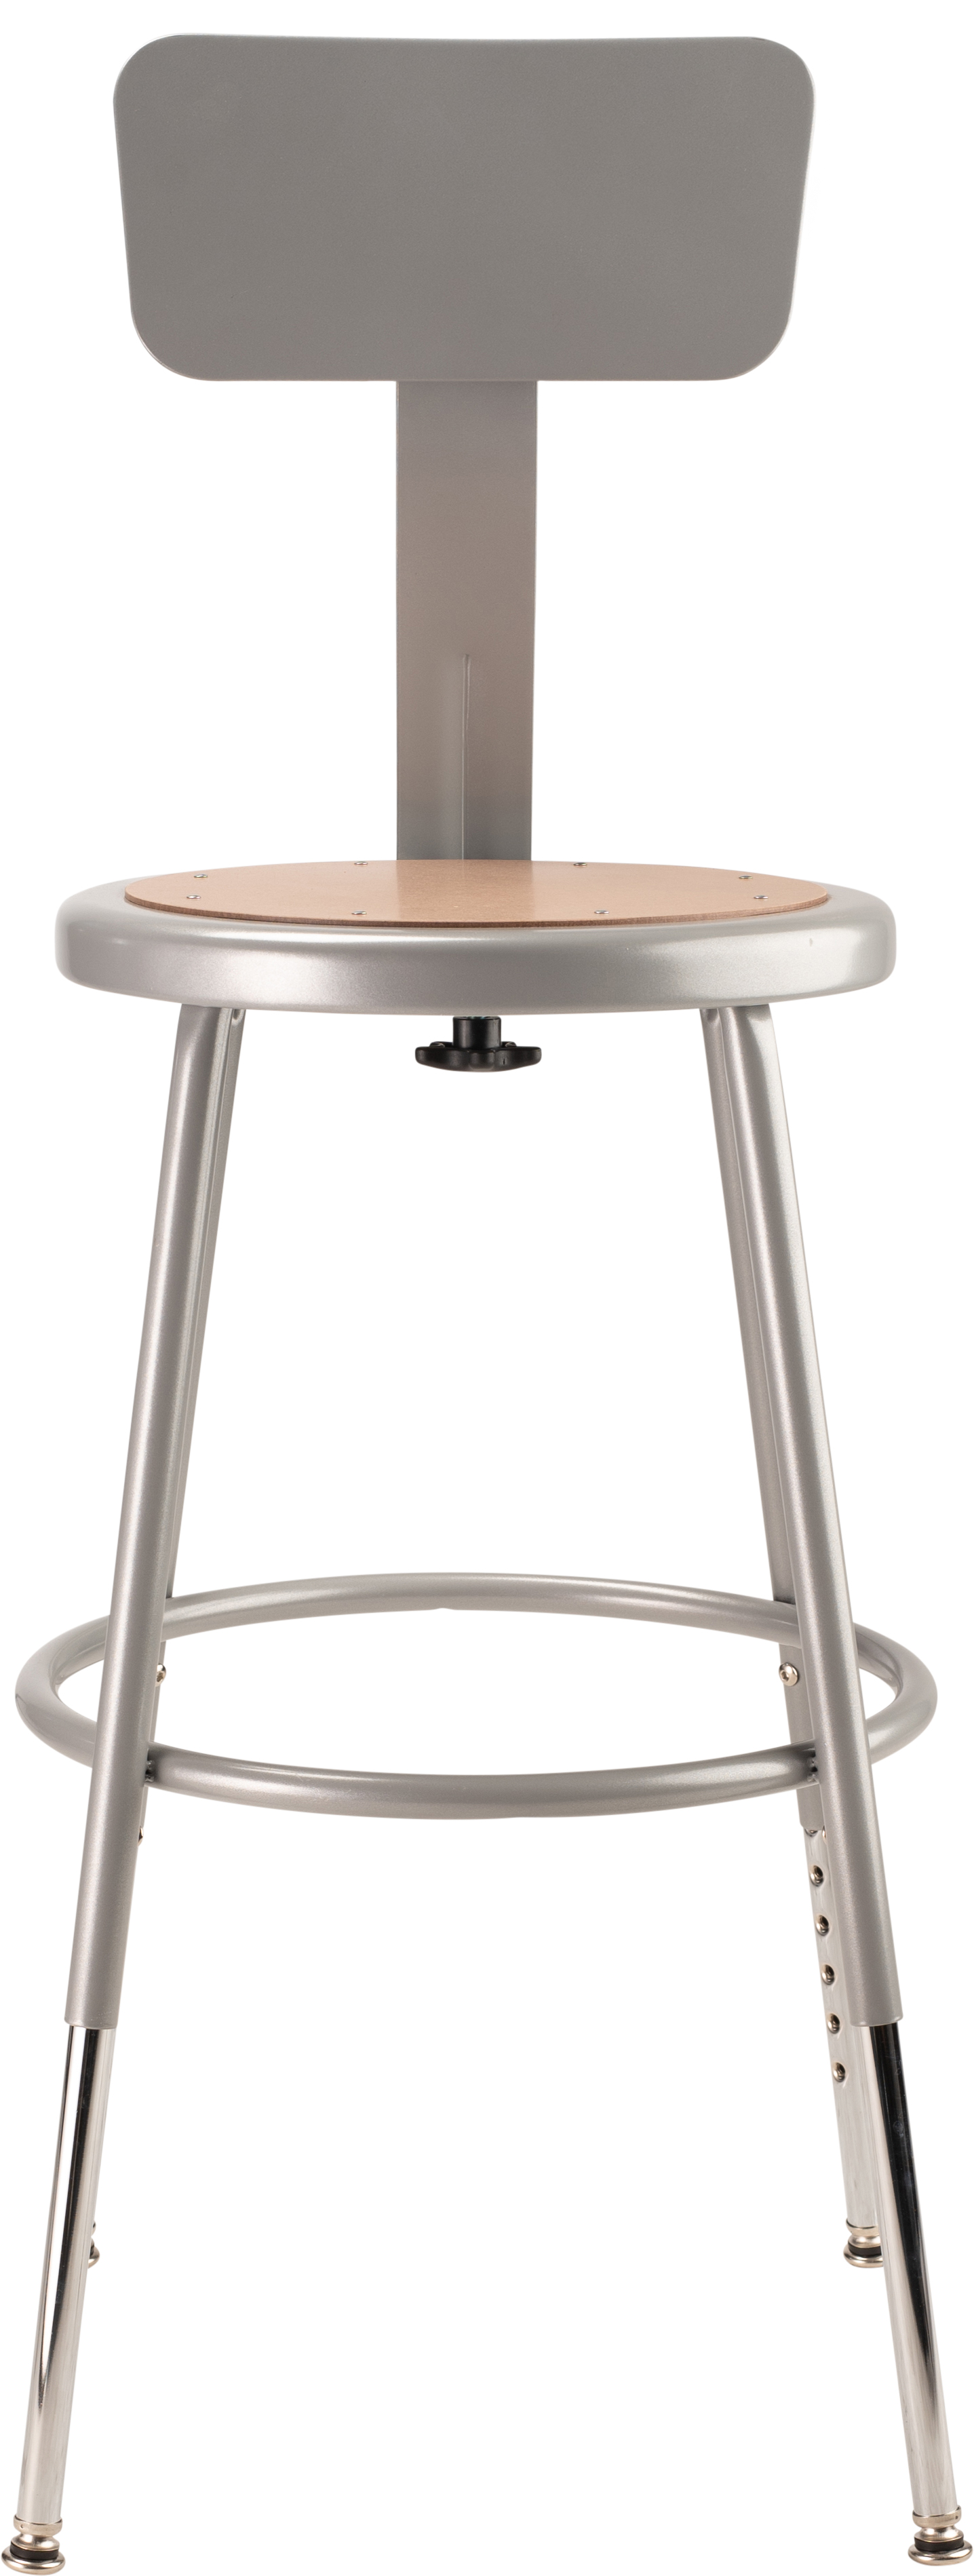 National Public Seating 6218HB Stools 19-27 Grey